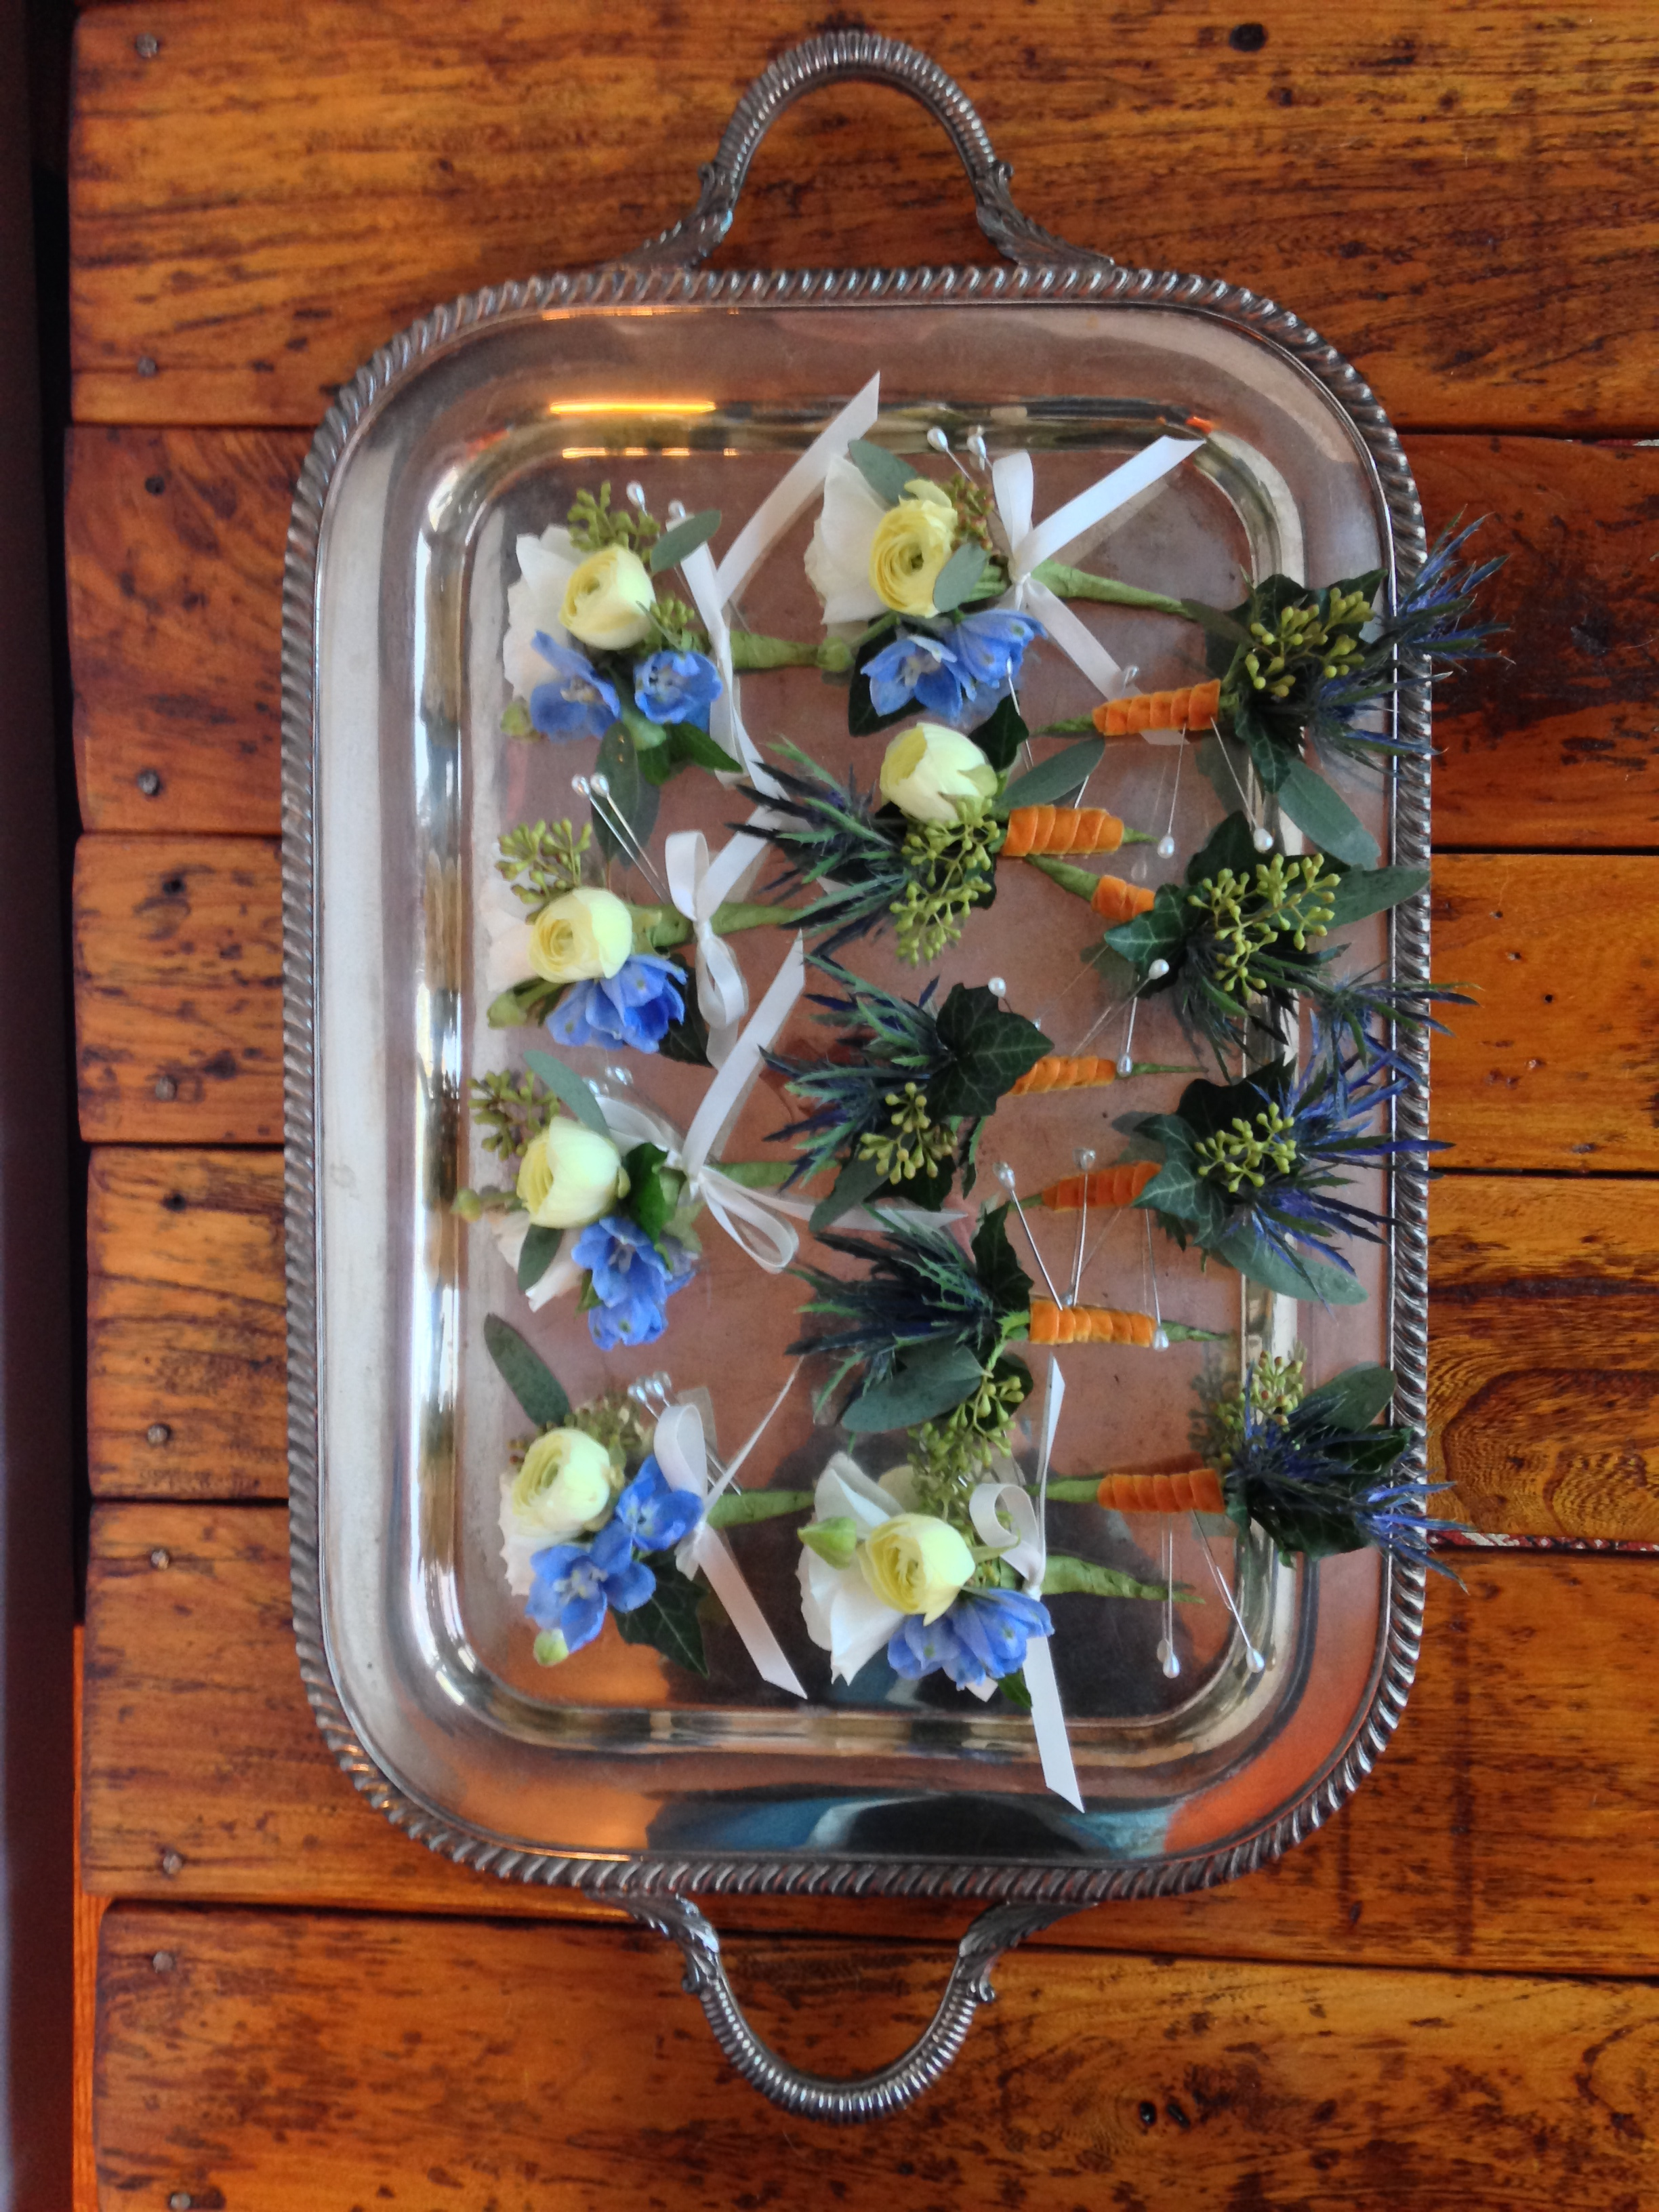 Photo by Catherine G. Damwood LLC, Image ofSilver Tray with Pin-On Corsages and Boutonnieres